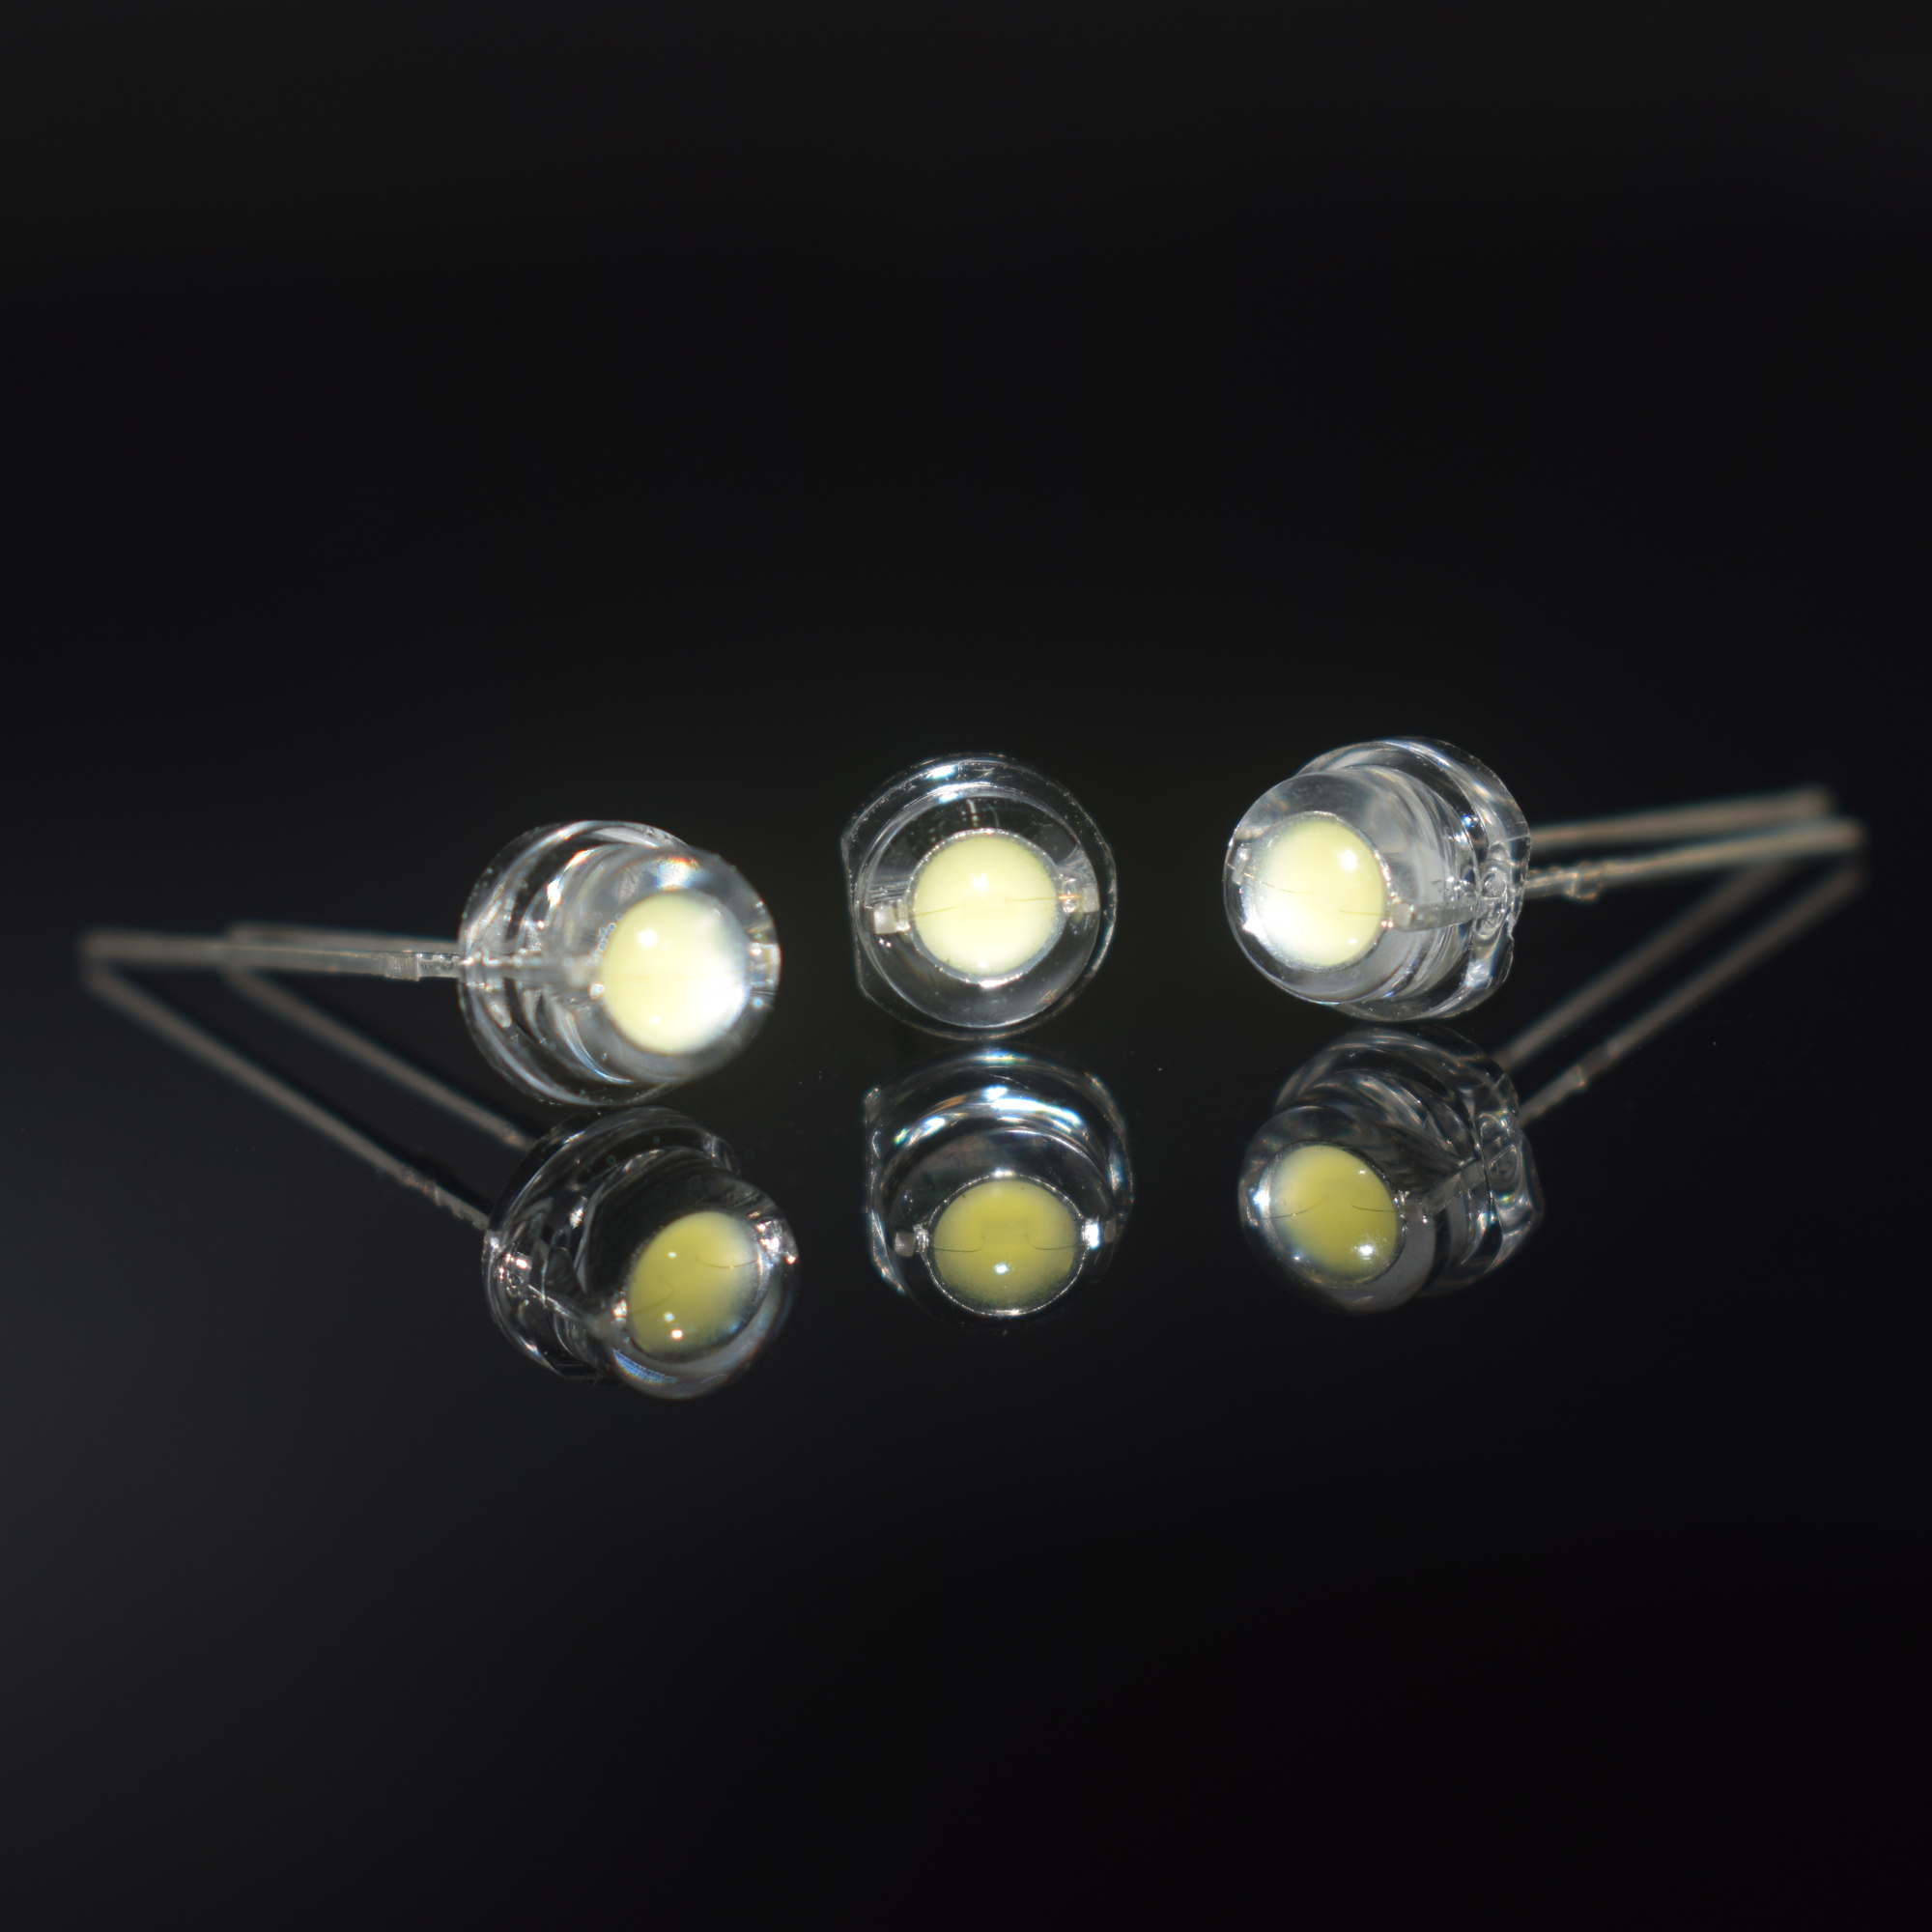 Super bright 5mm white LED